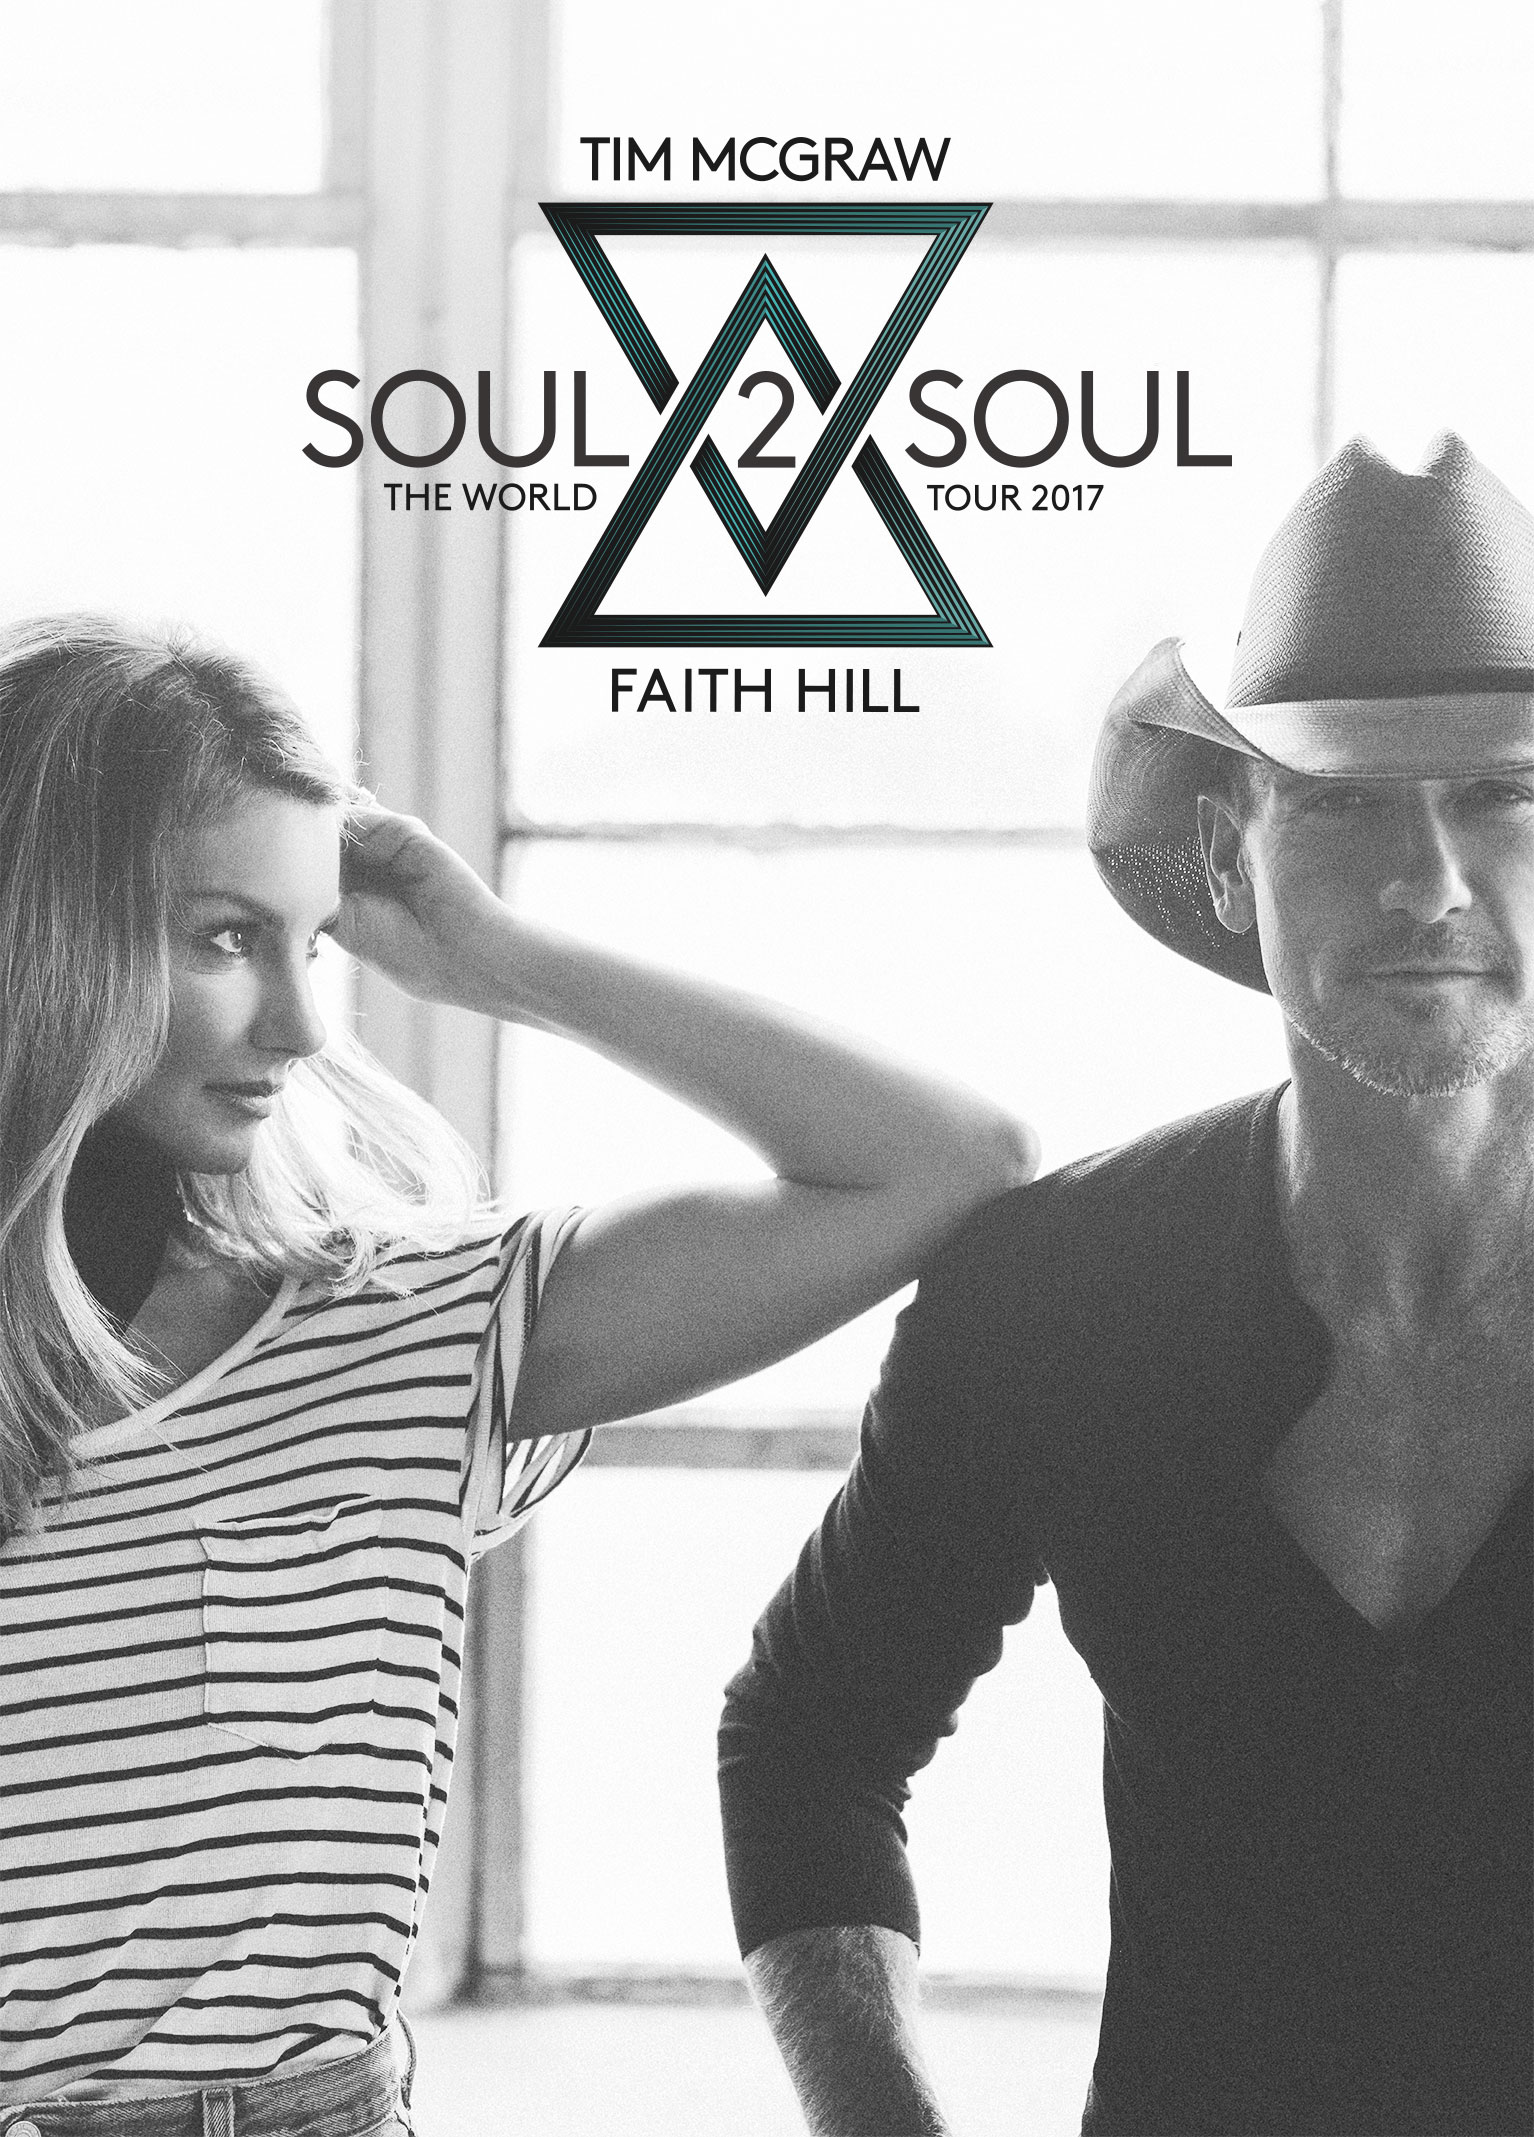 Grammy Award-Winning Superstars Tim McGraw and Faith Hill Announce Soul2Soul The World Tour